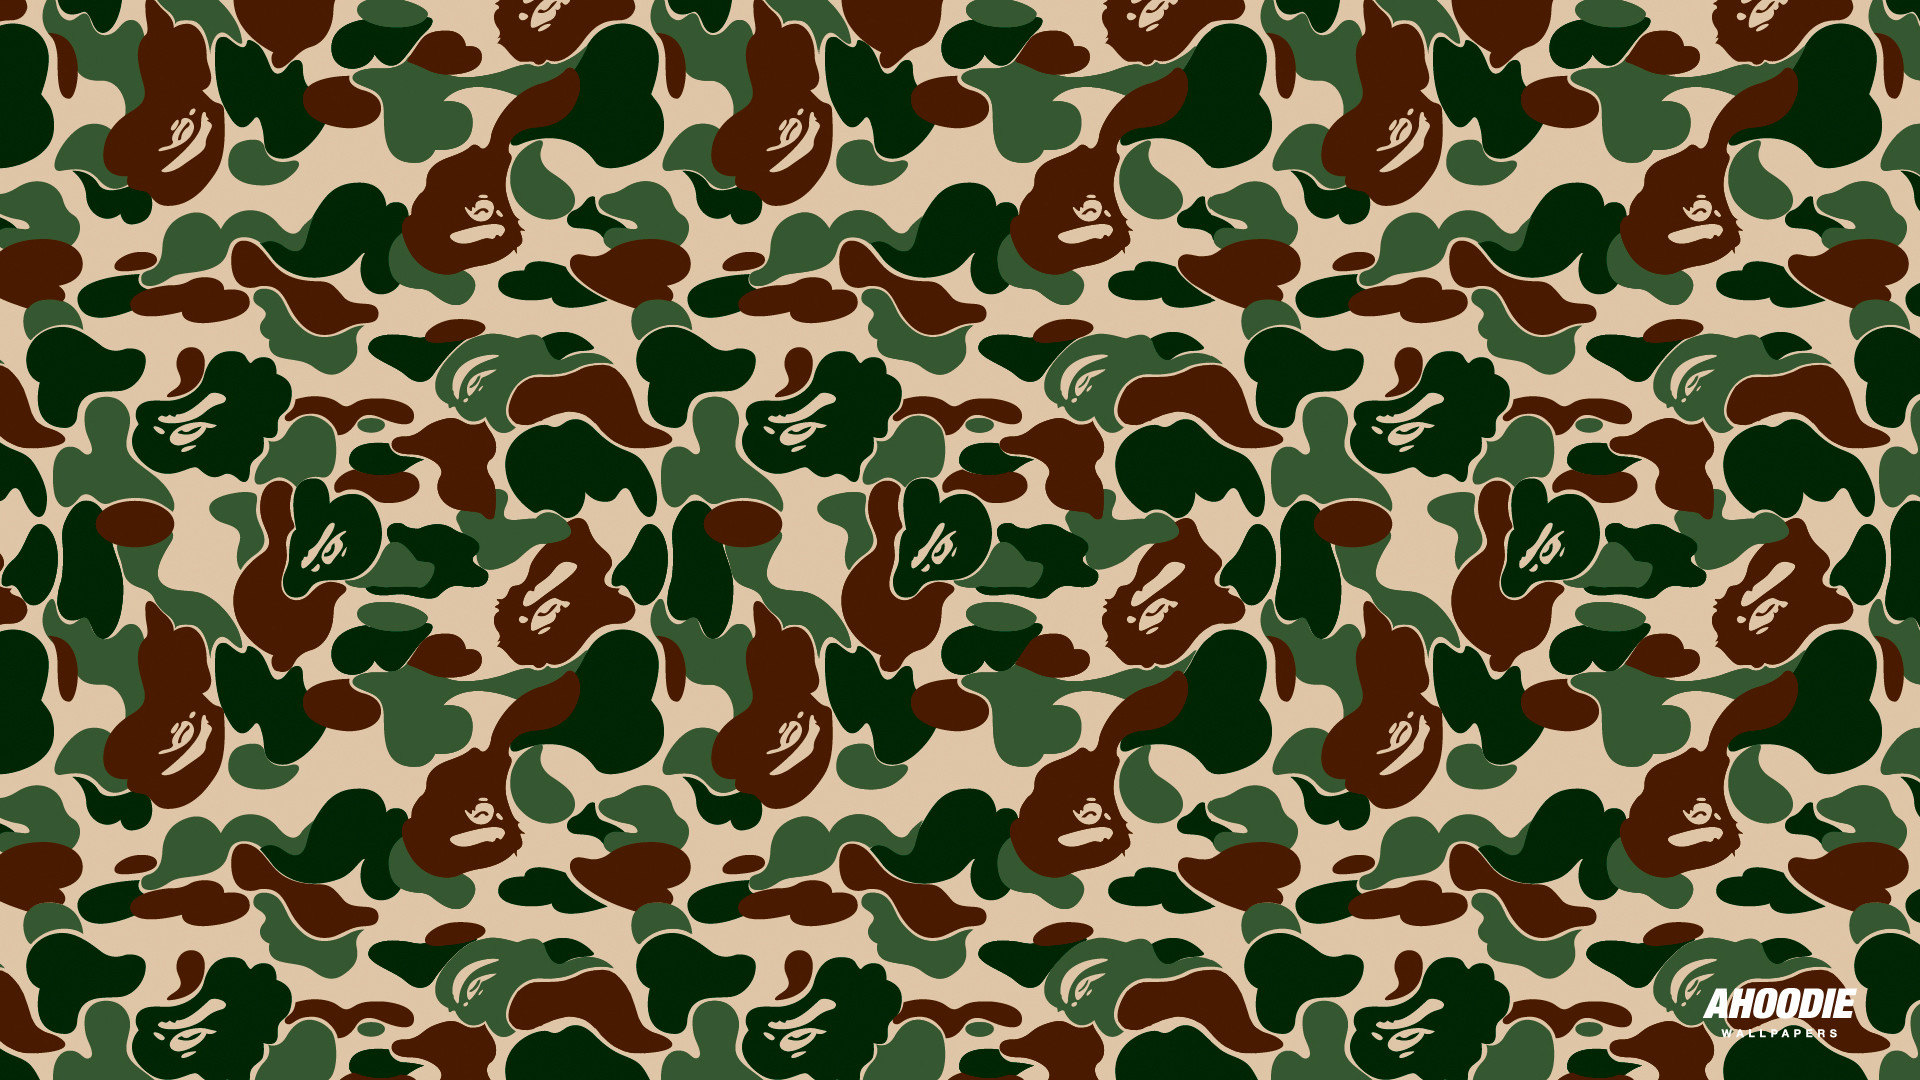 Bape Wallpaper Hd 60 Images